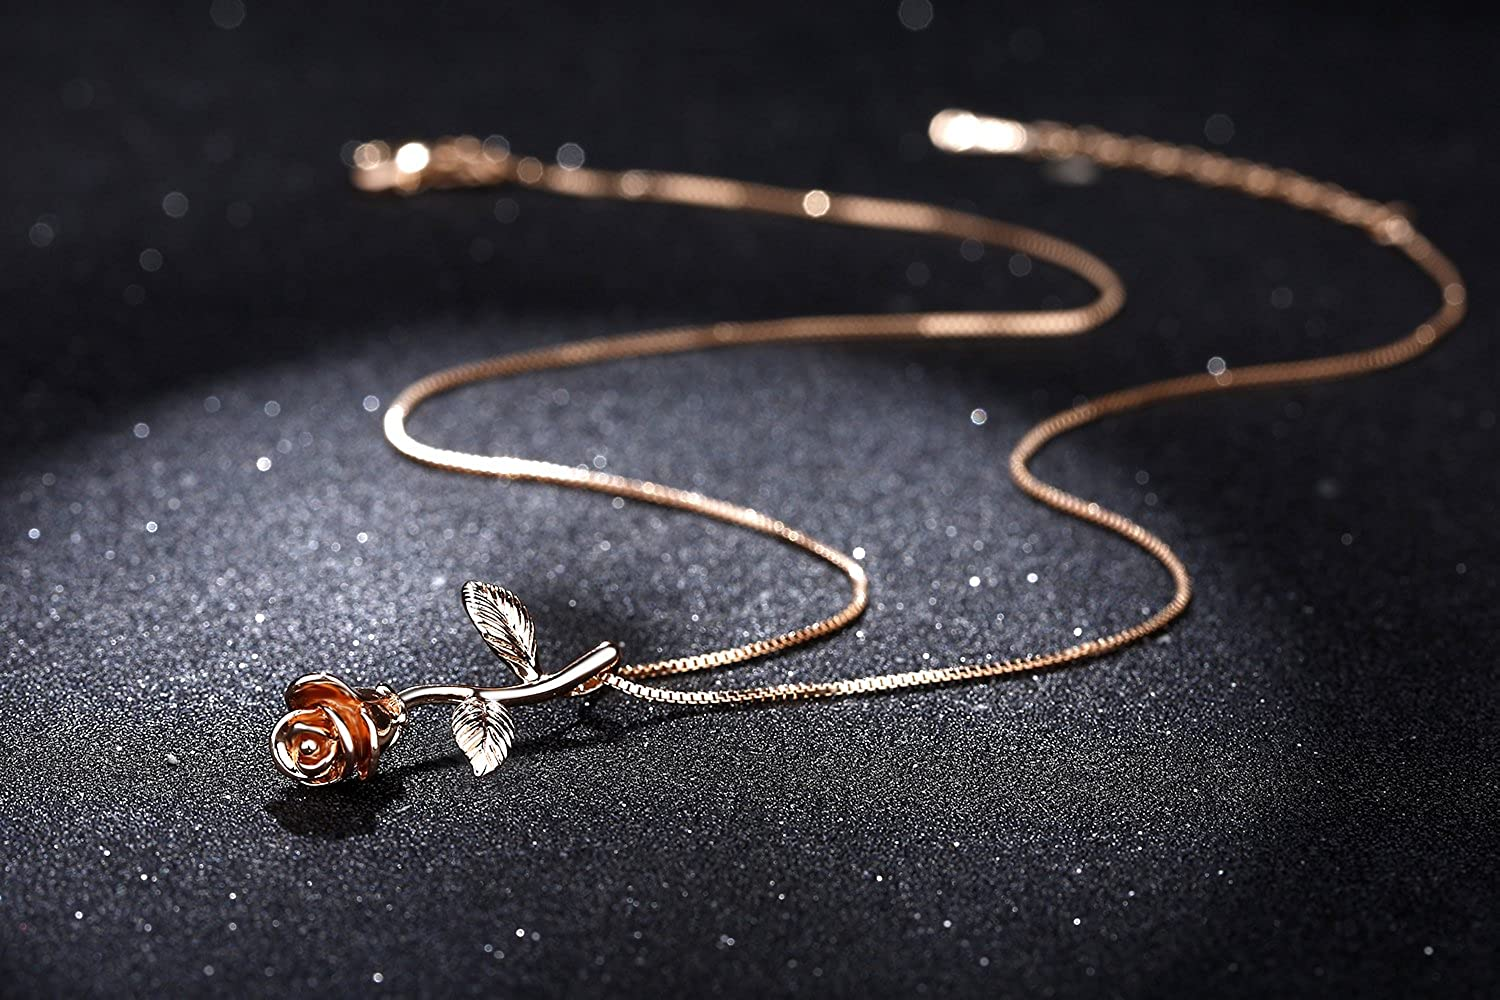 Gardeners Necklace Perfect For Mothers Day 14K Gold Plated Rose Flower Pendant Necklace Rose Gold Plated Beauty and the Beast Rose Jewelry Birthday and Christmas Romantic Rose Gift For Women